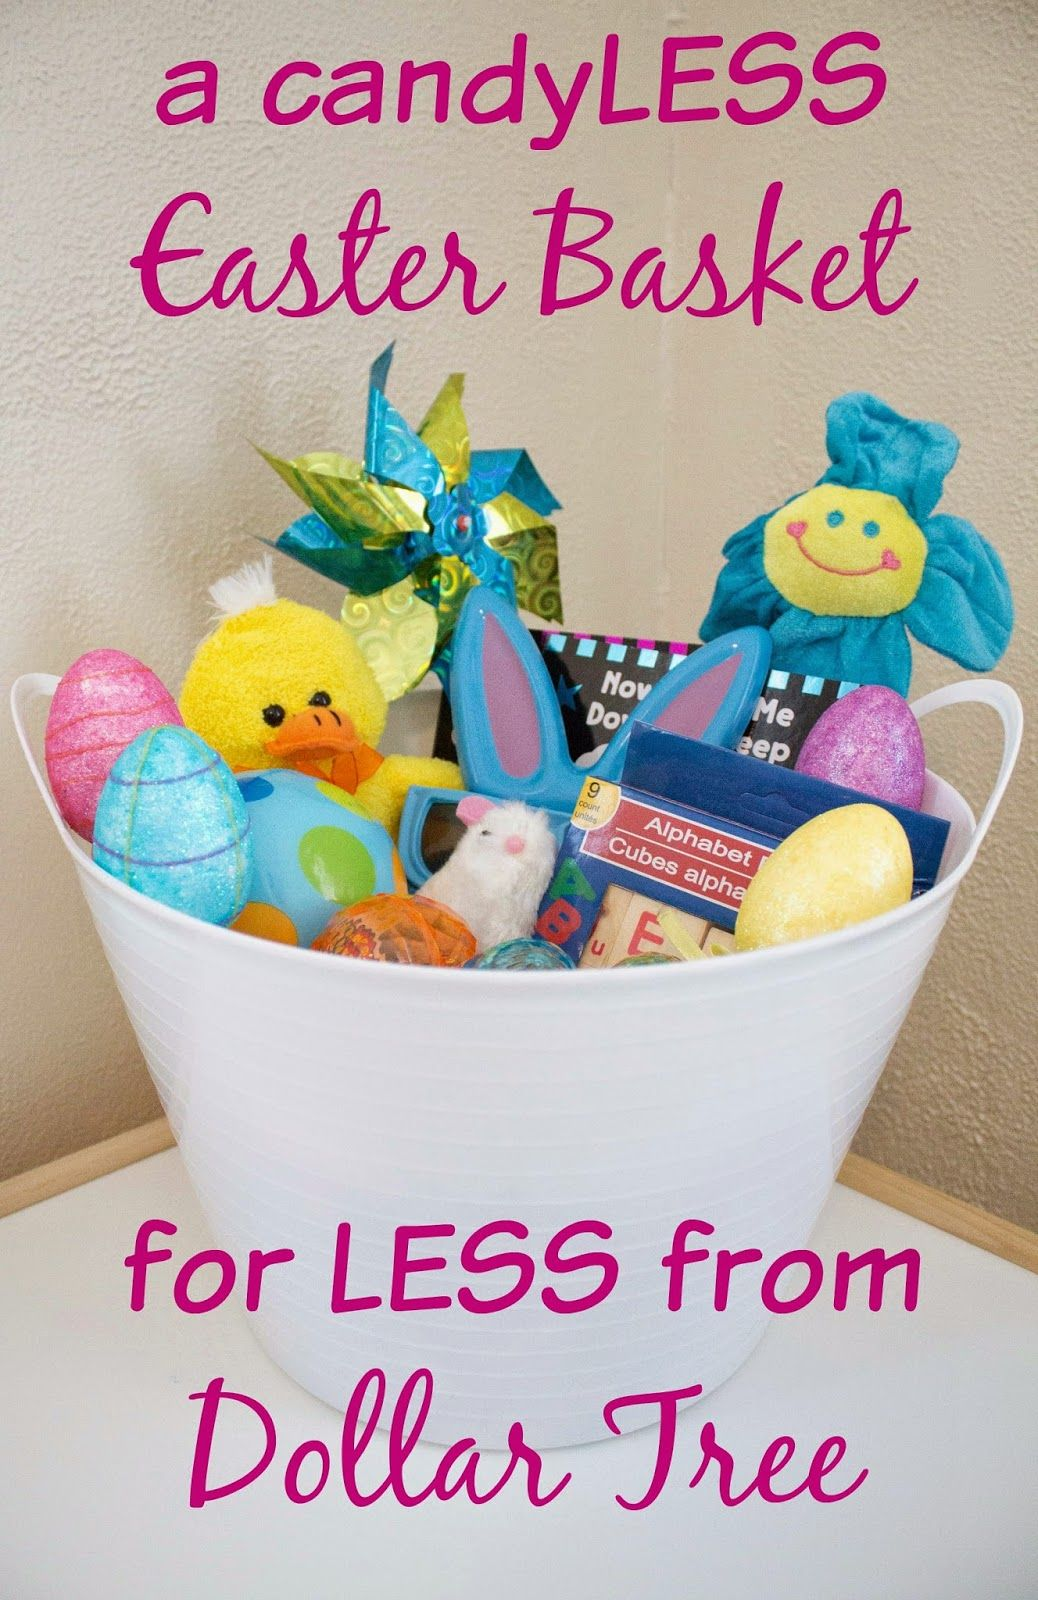 Wife mommy me a candyless easter basket for less from dollar tree wife mommy me a candyless easter basket for less from dollar tree budget negle Images